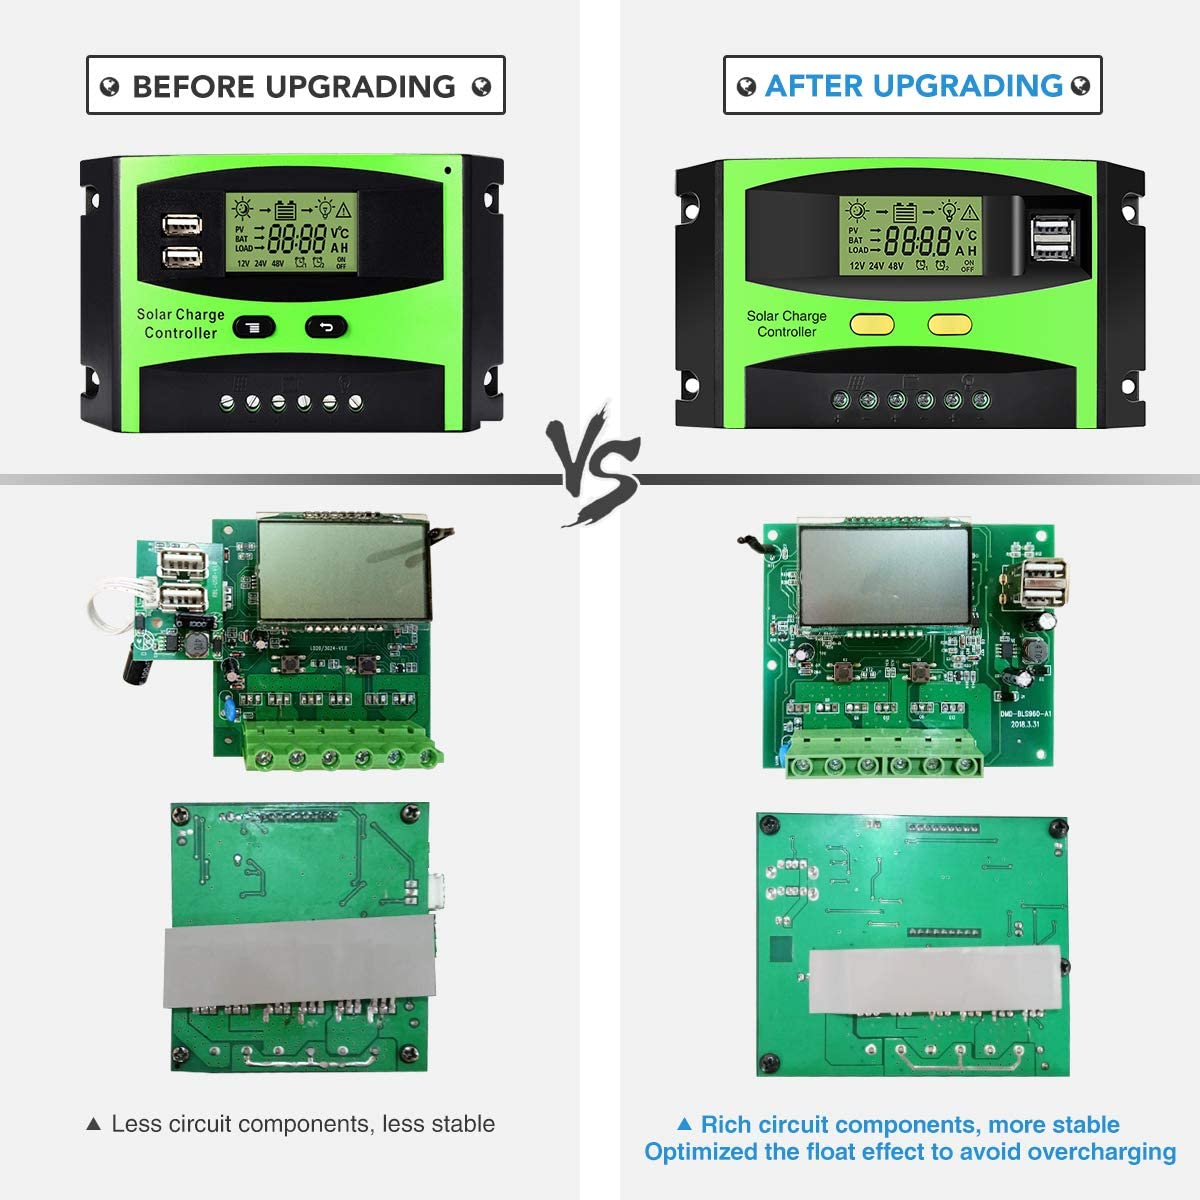 MOHOO Solar Charge Controller, 30A Solar Charger Controller, 12V/24V Solar Panel Intelligent Regulator with Dual USB Port and PWM LCD Display (Upgraded) : Garden & Outdoor